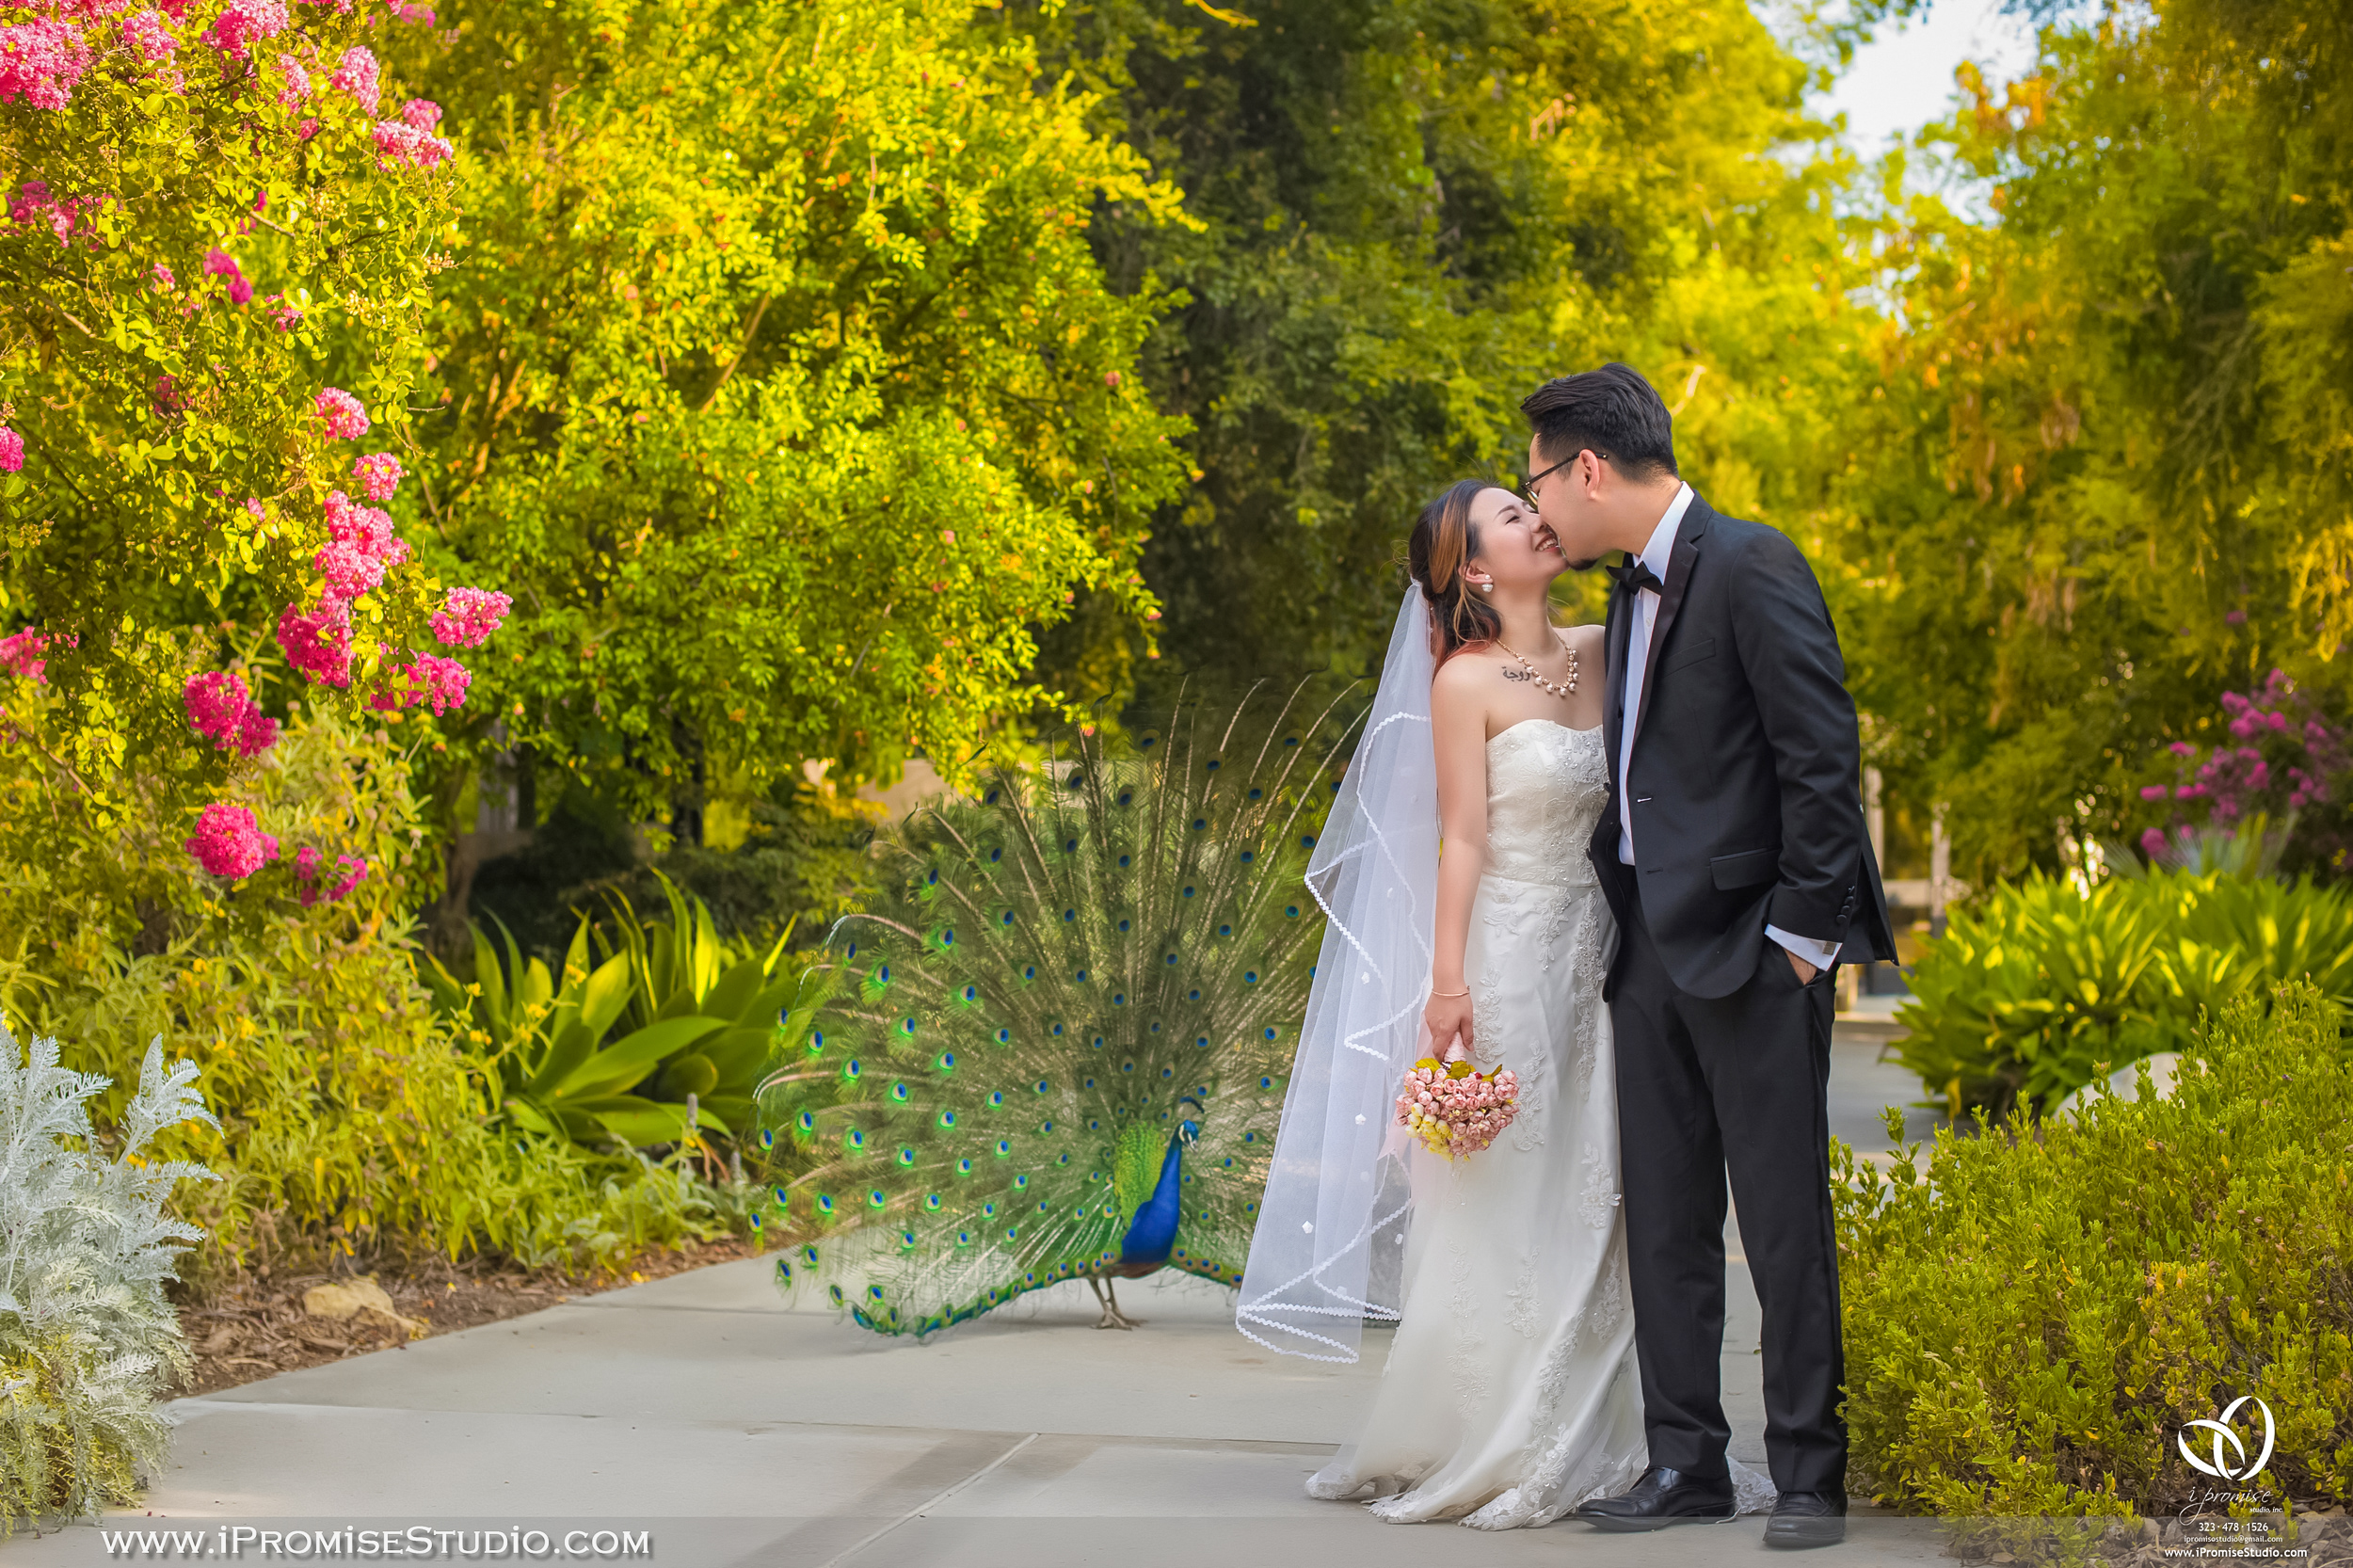 Arcadia Los Angeles County Arboretum and Botanic Garden Peacock-engagement wedding 05.JPG